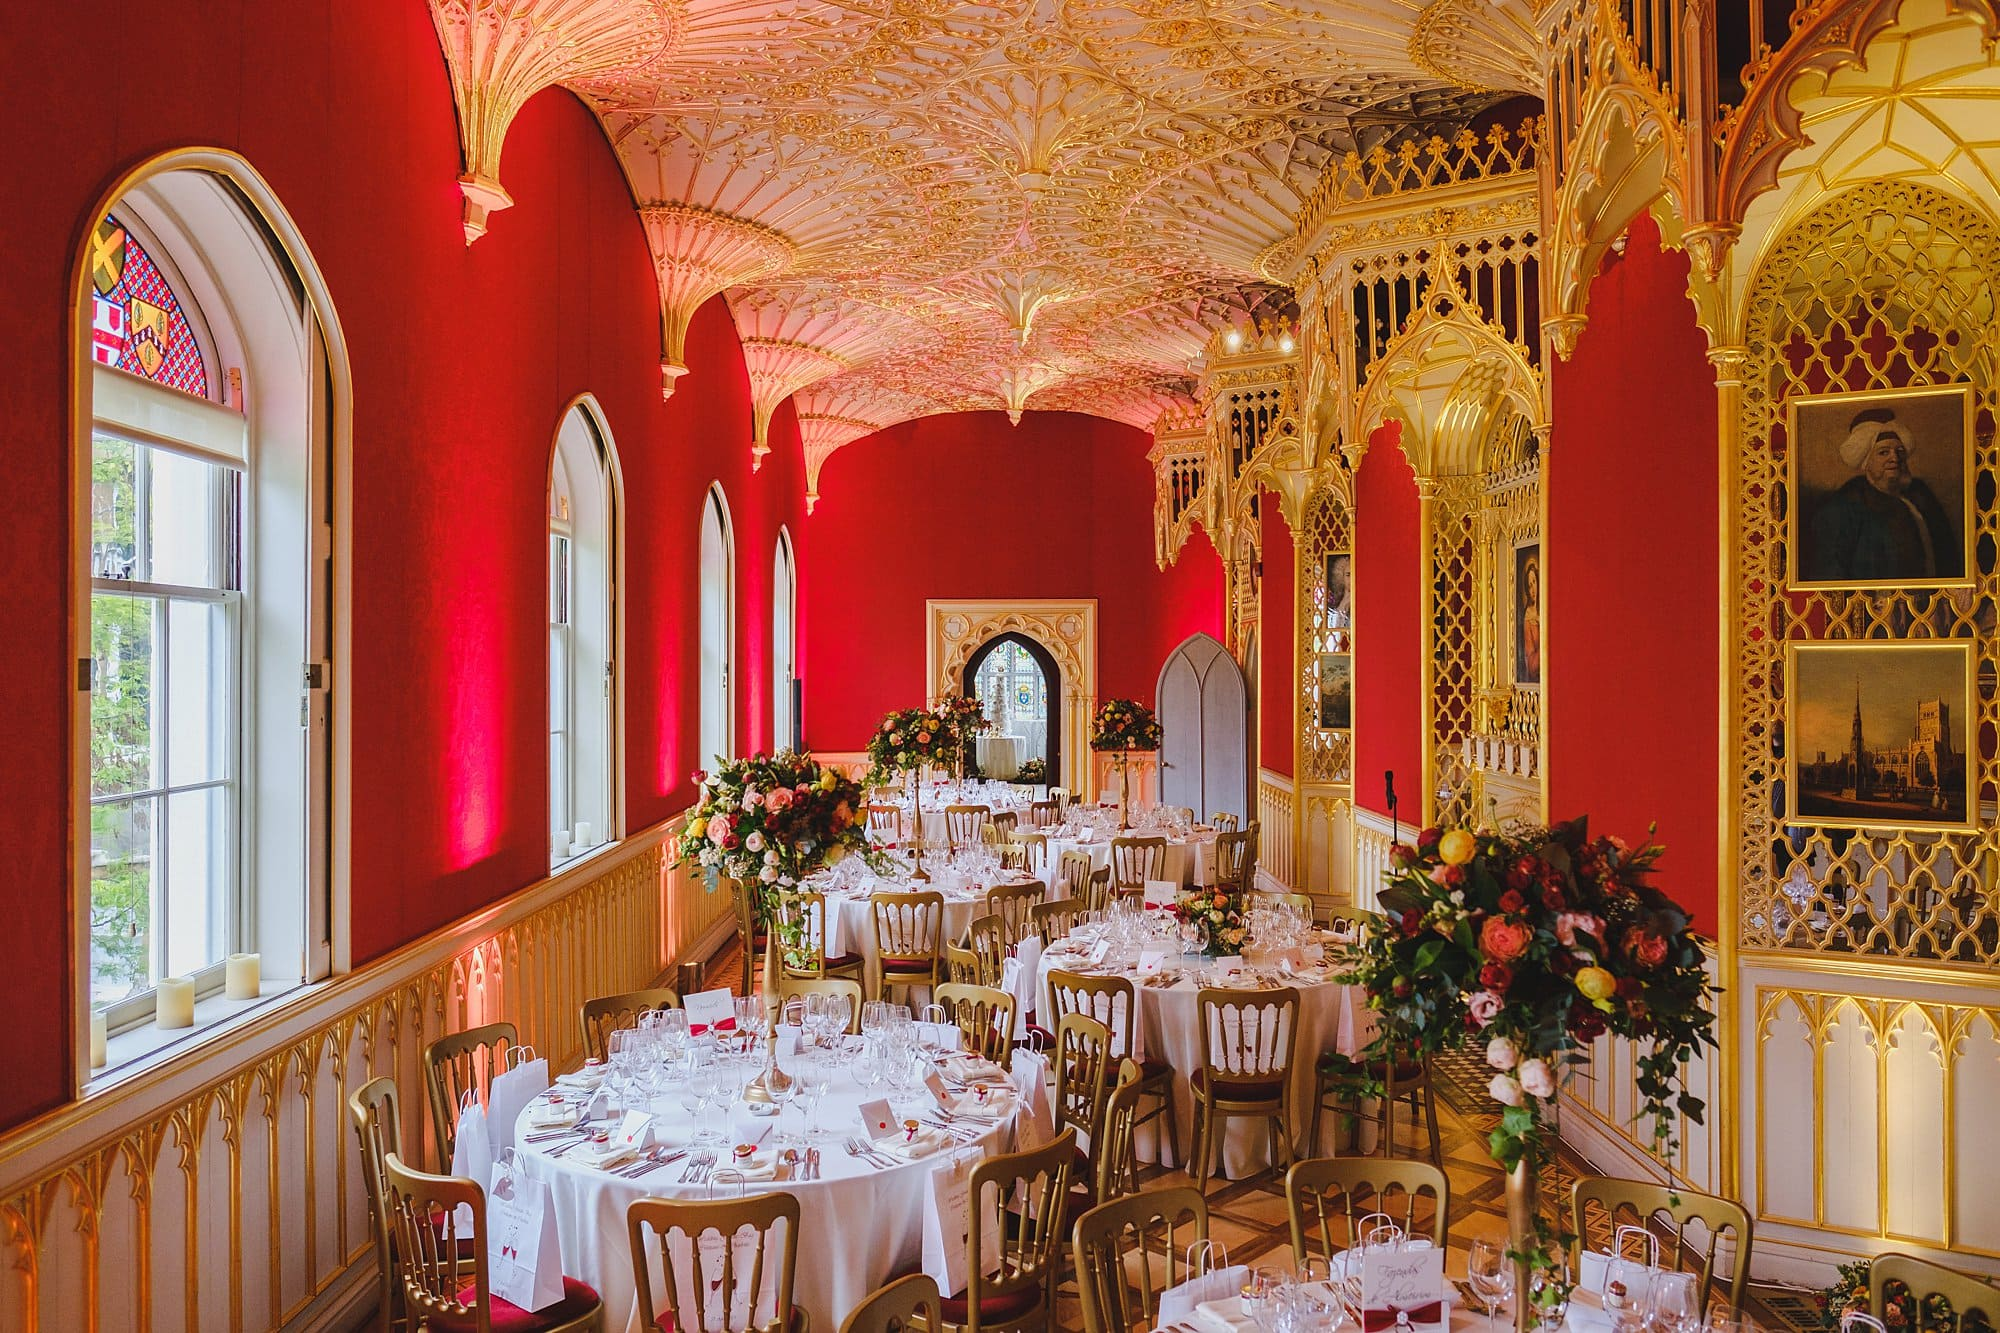 Strawberry Hill House gallery dressed for a wedding breakfast